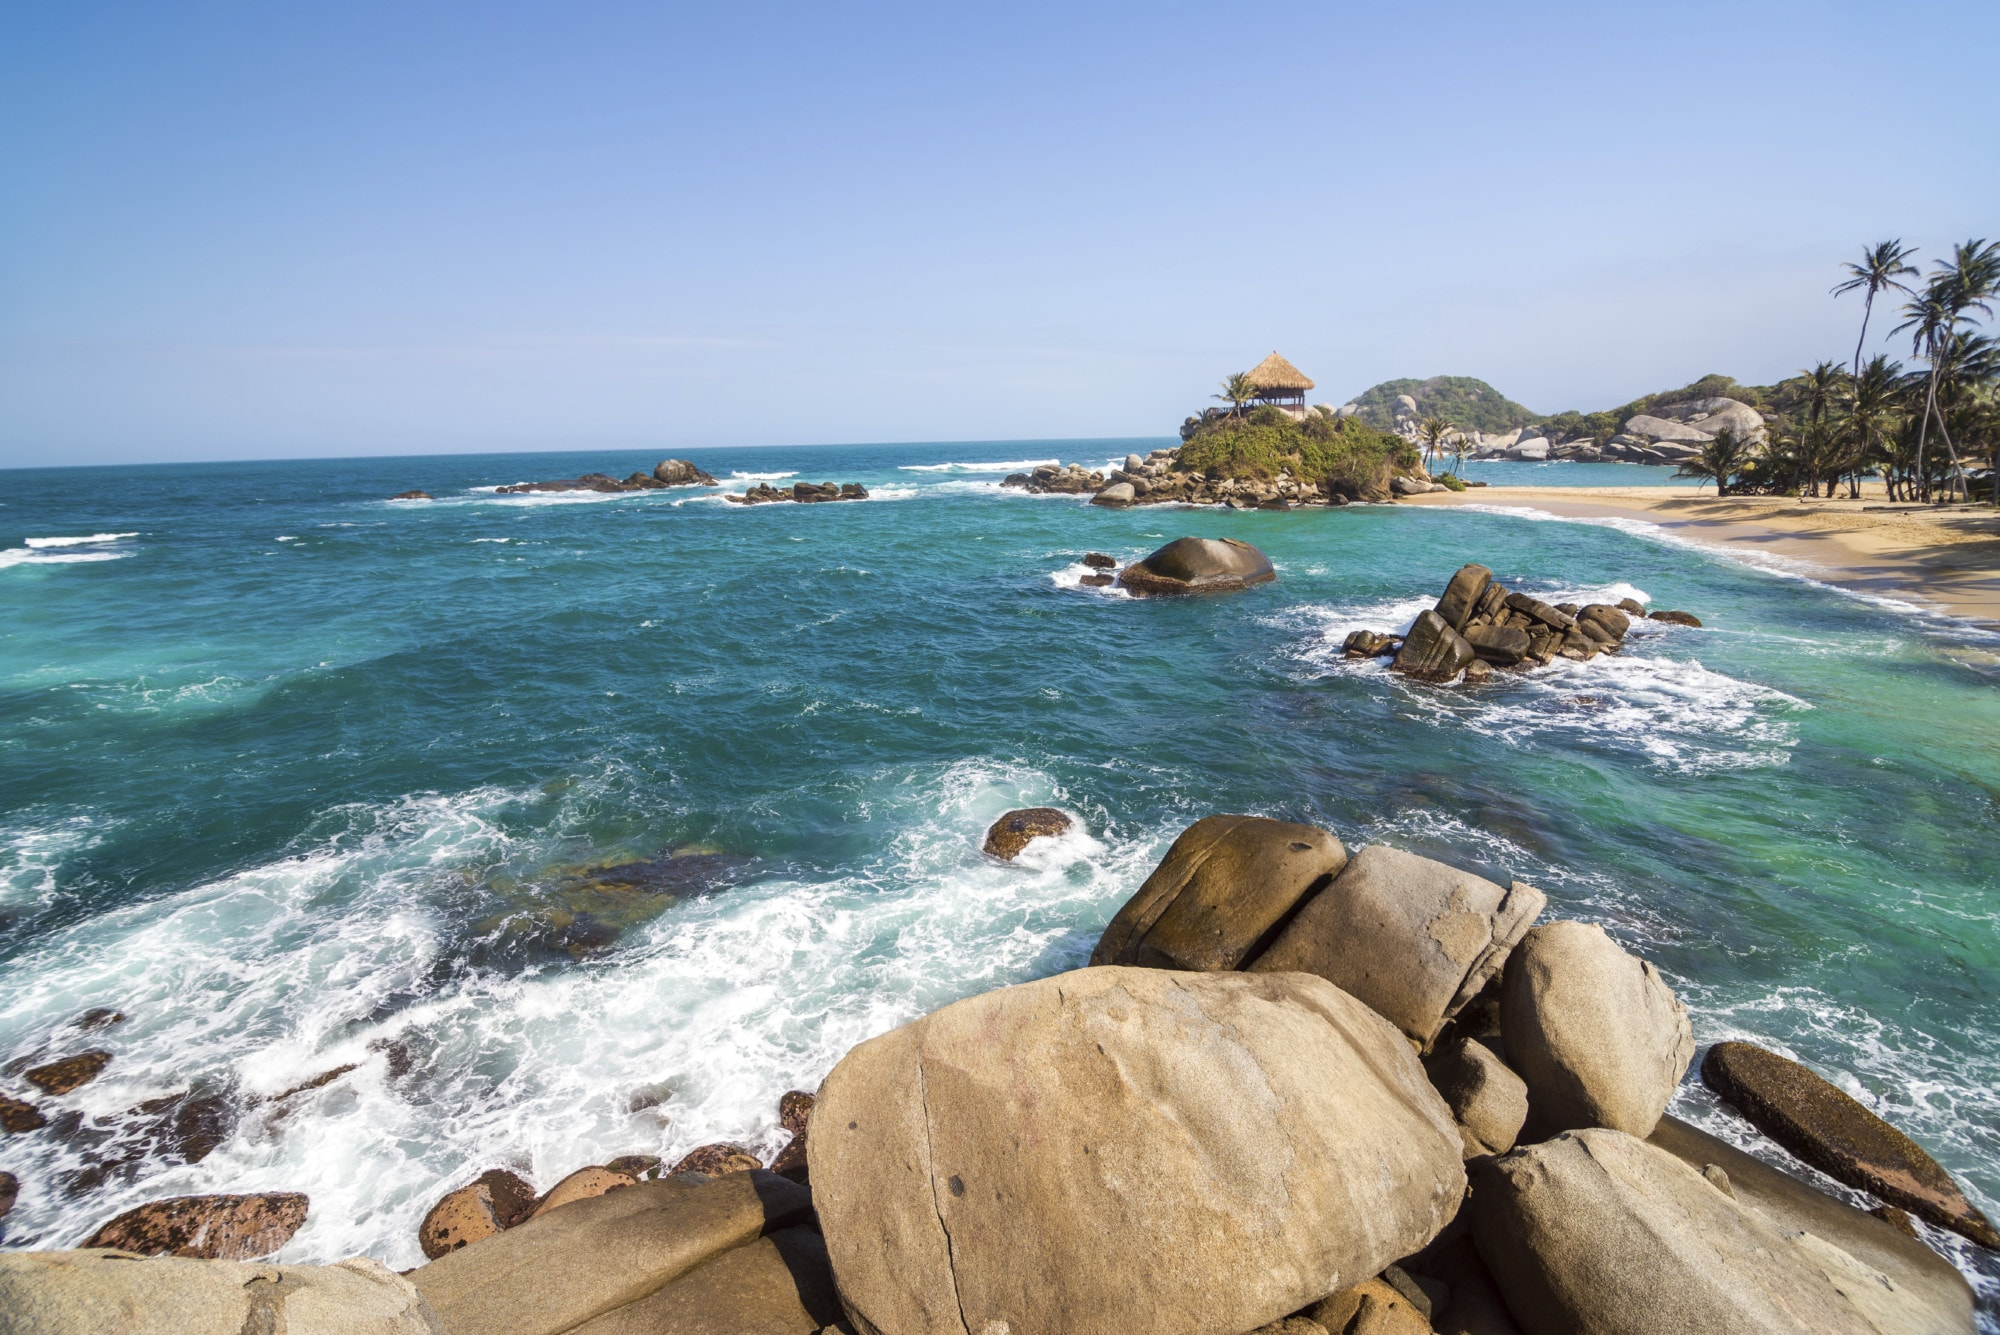 Destinations_Colombia_Tayrona_iStock_000048373752_Large (1)